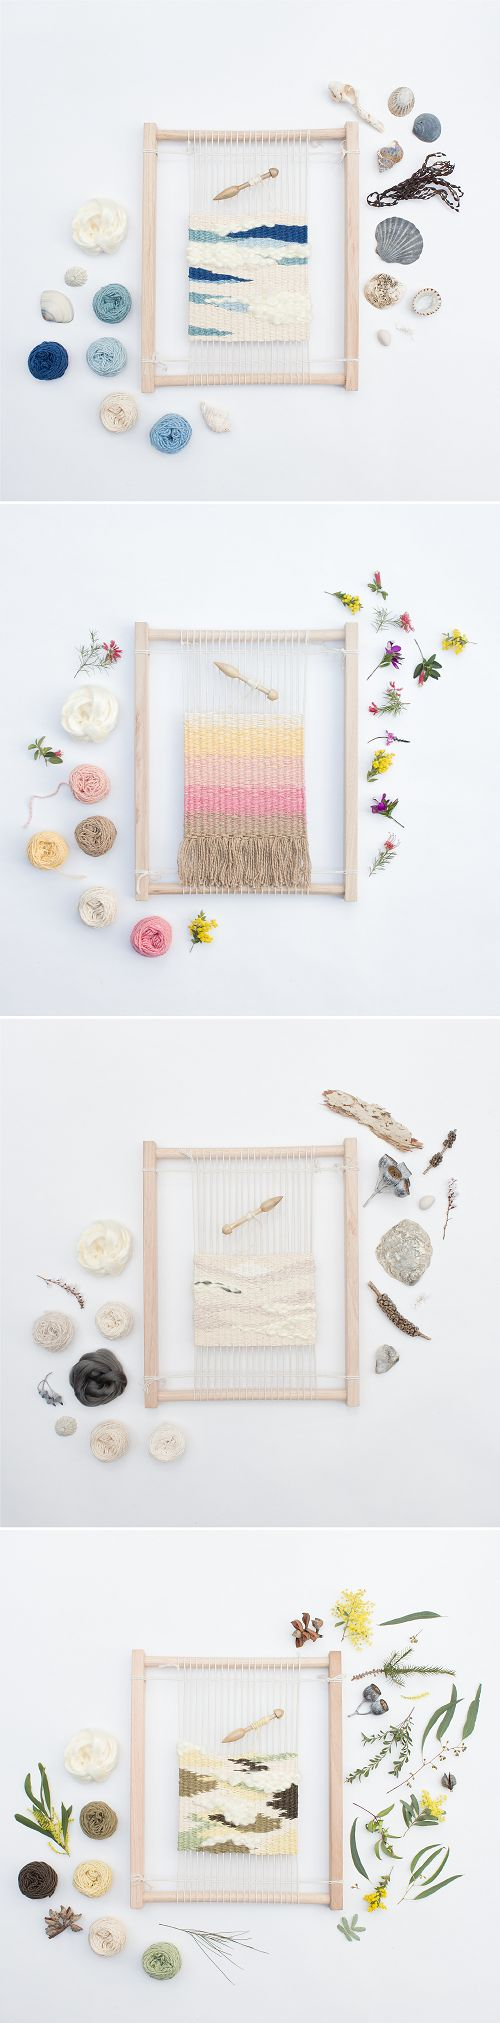 Weaving Kit for beginners by Alchemy.